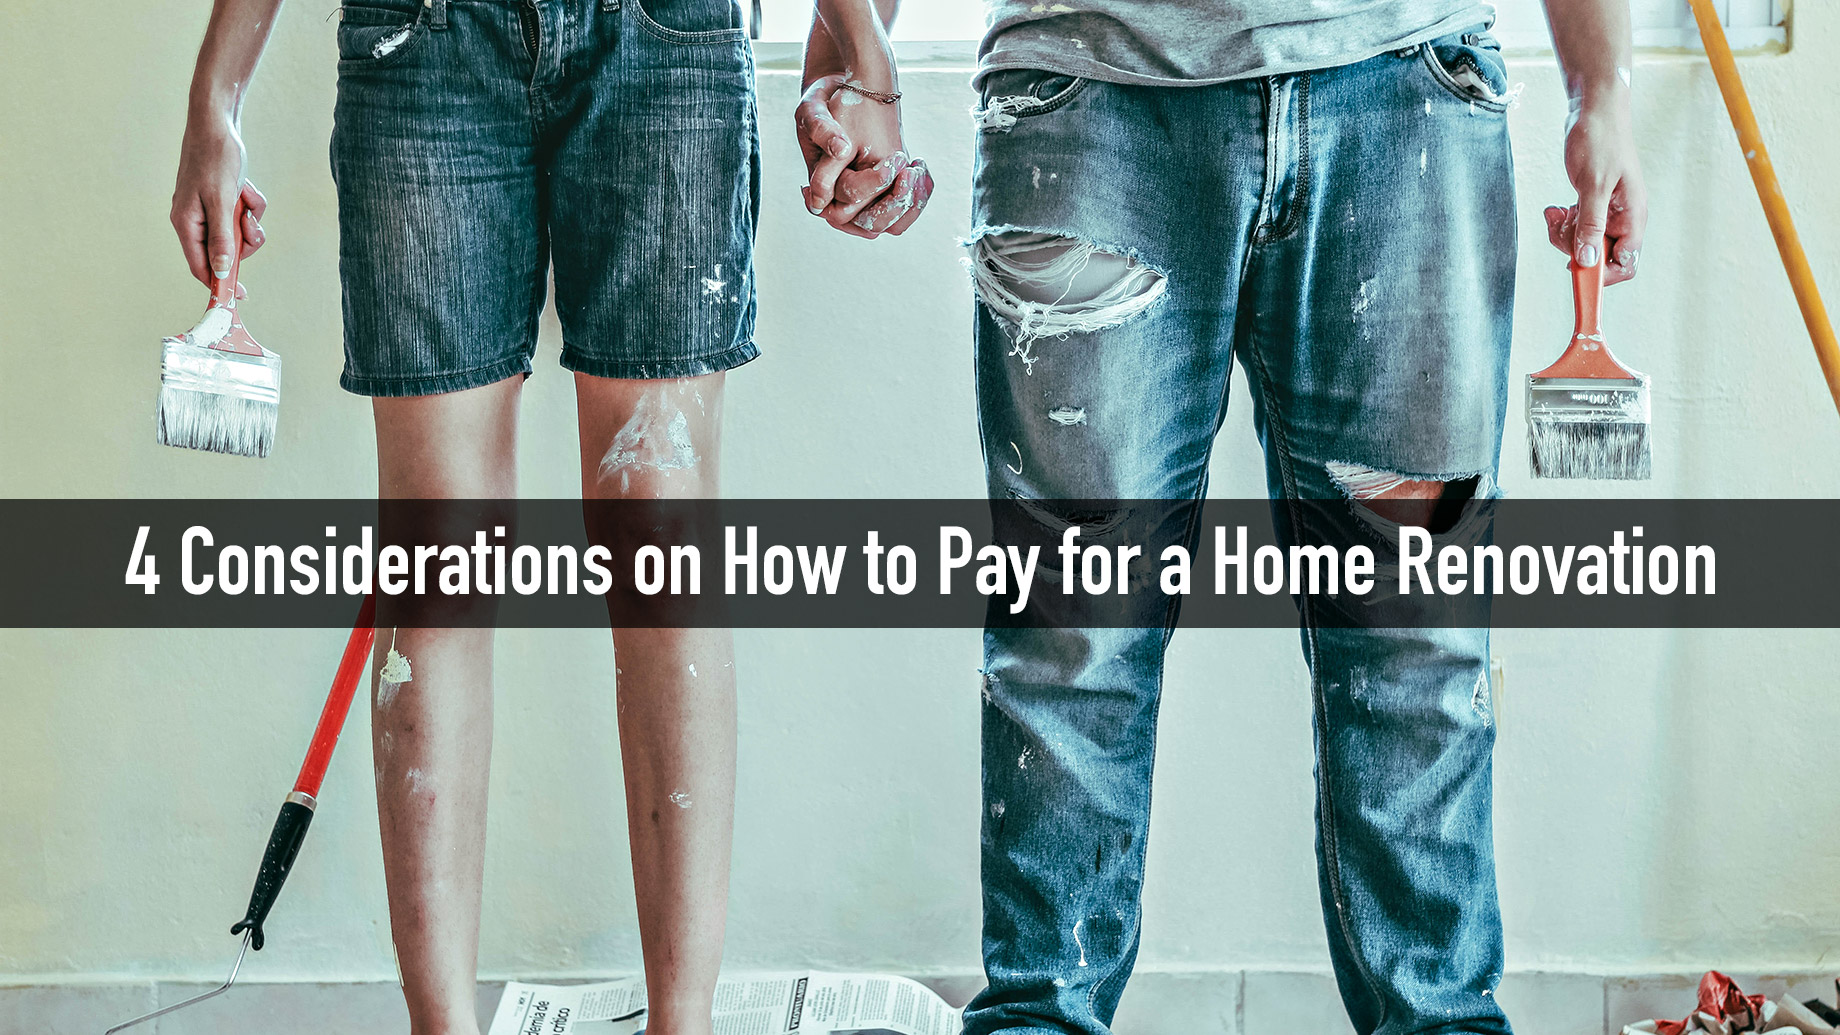 4 Considerations on How to Pay for a Home Renovation